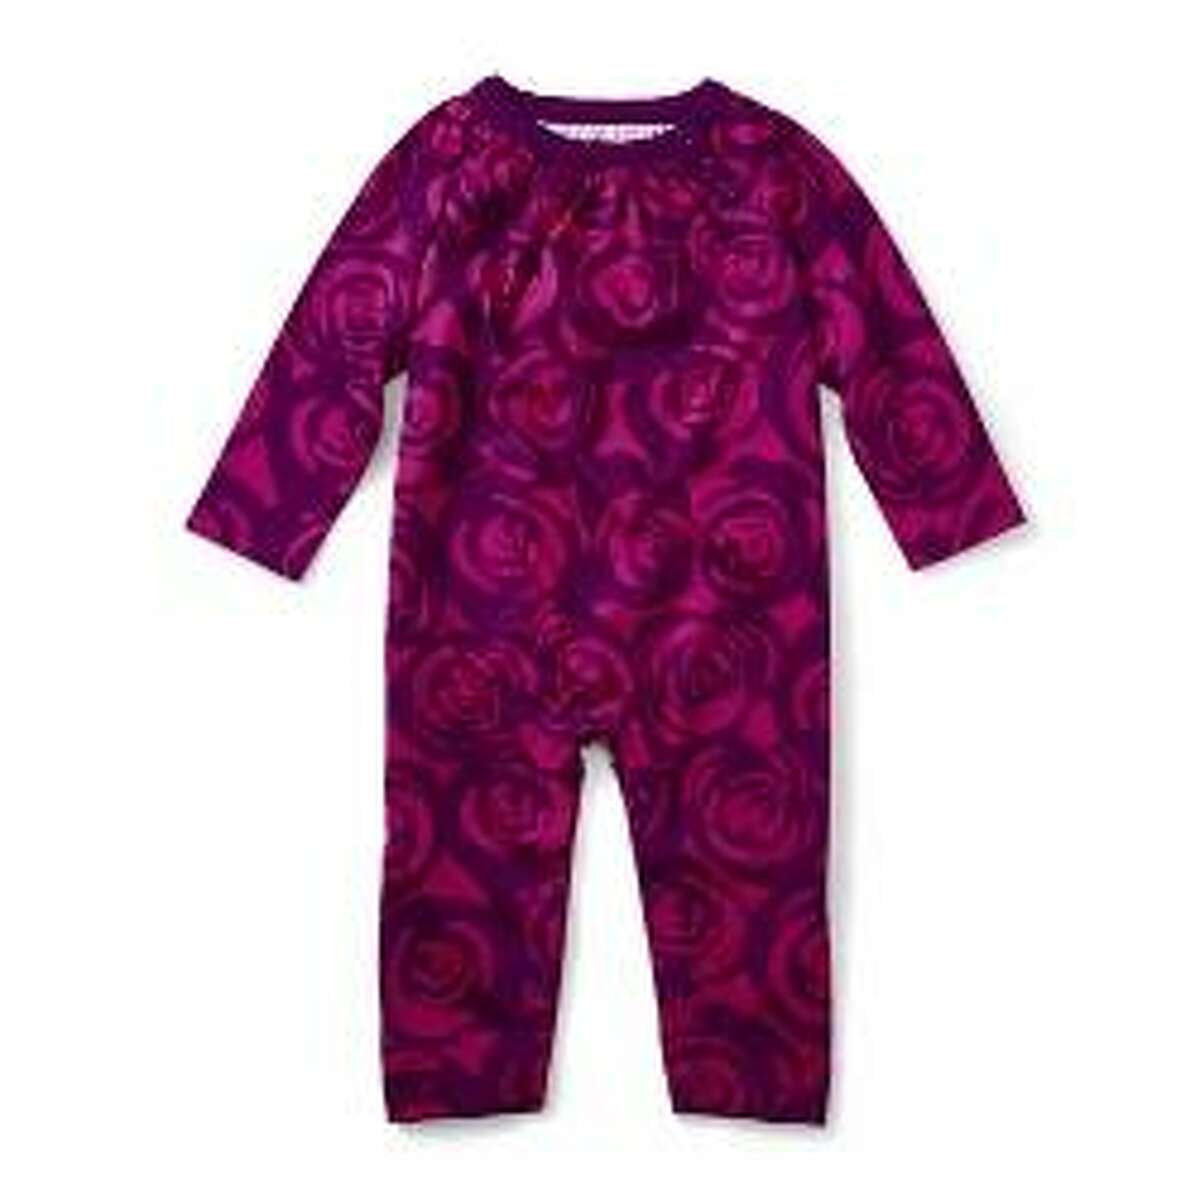 Tea Collection is recalling about 3,800 children?'s rompers because the snaps near the collar can detach, posing a choking hazard to young children. Photos courtesy of the Consumer Product Safety Commission.